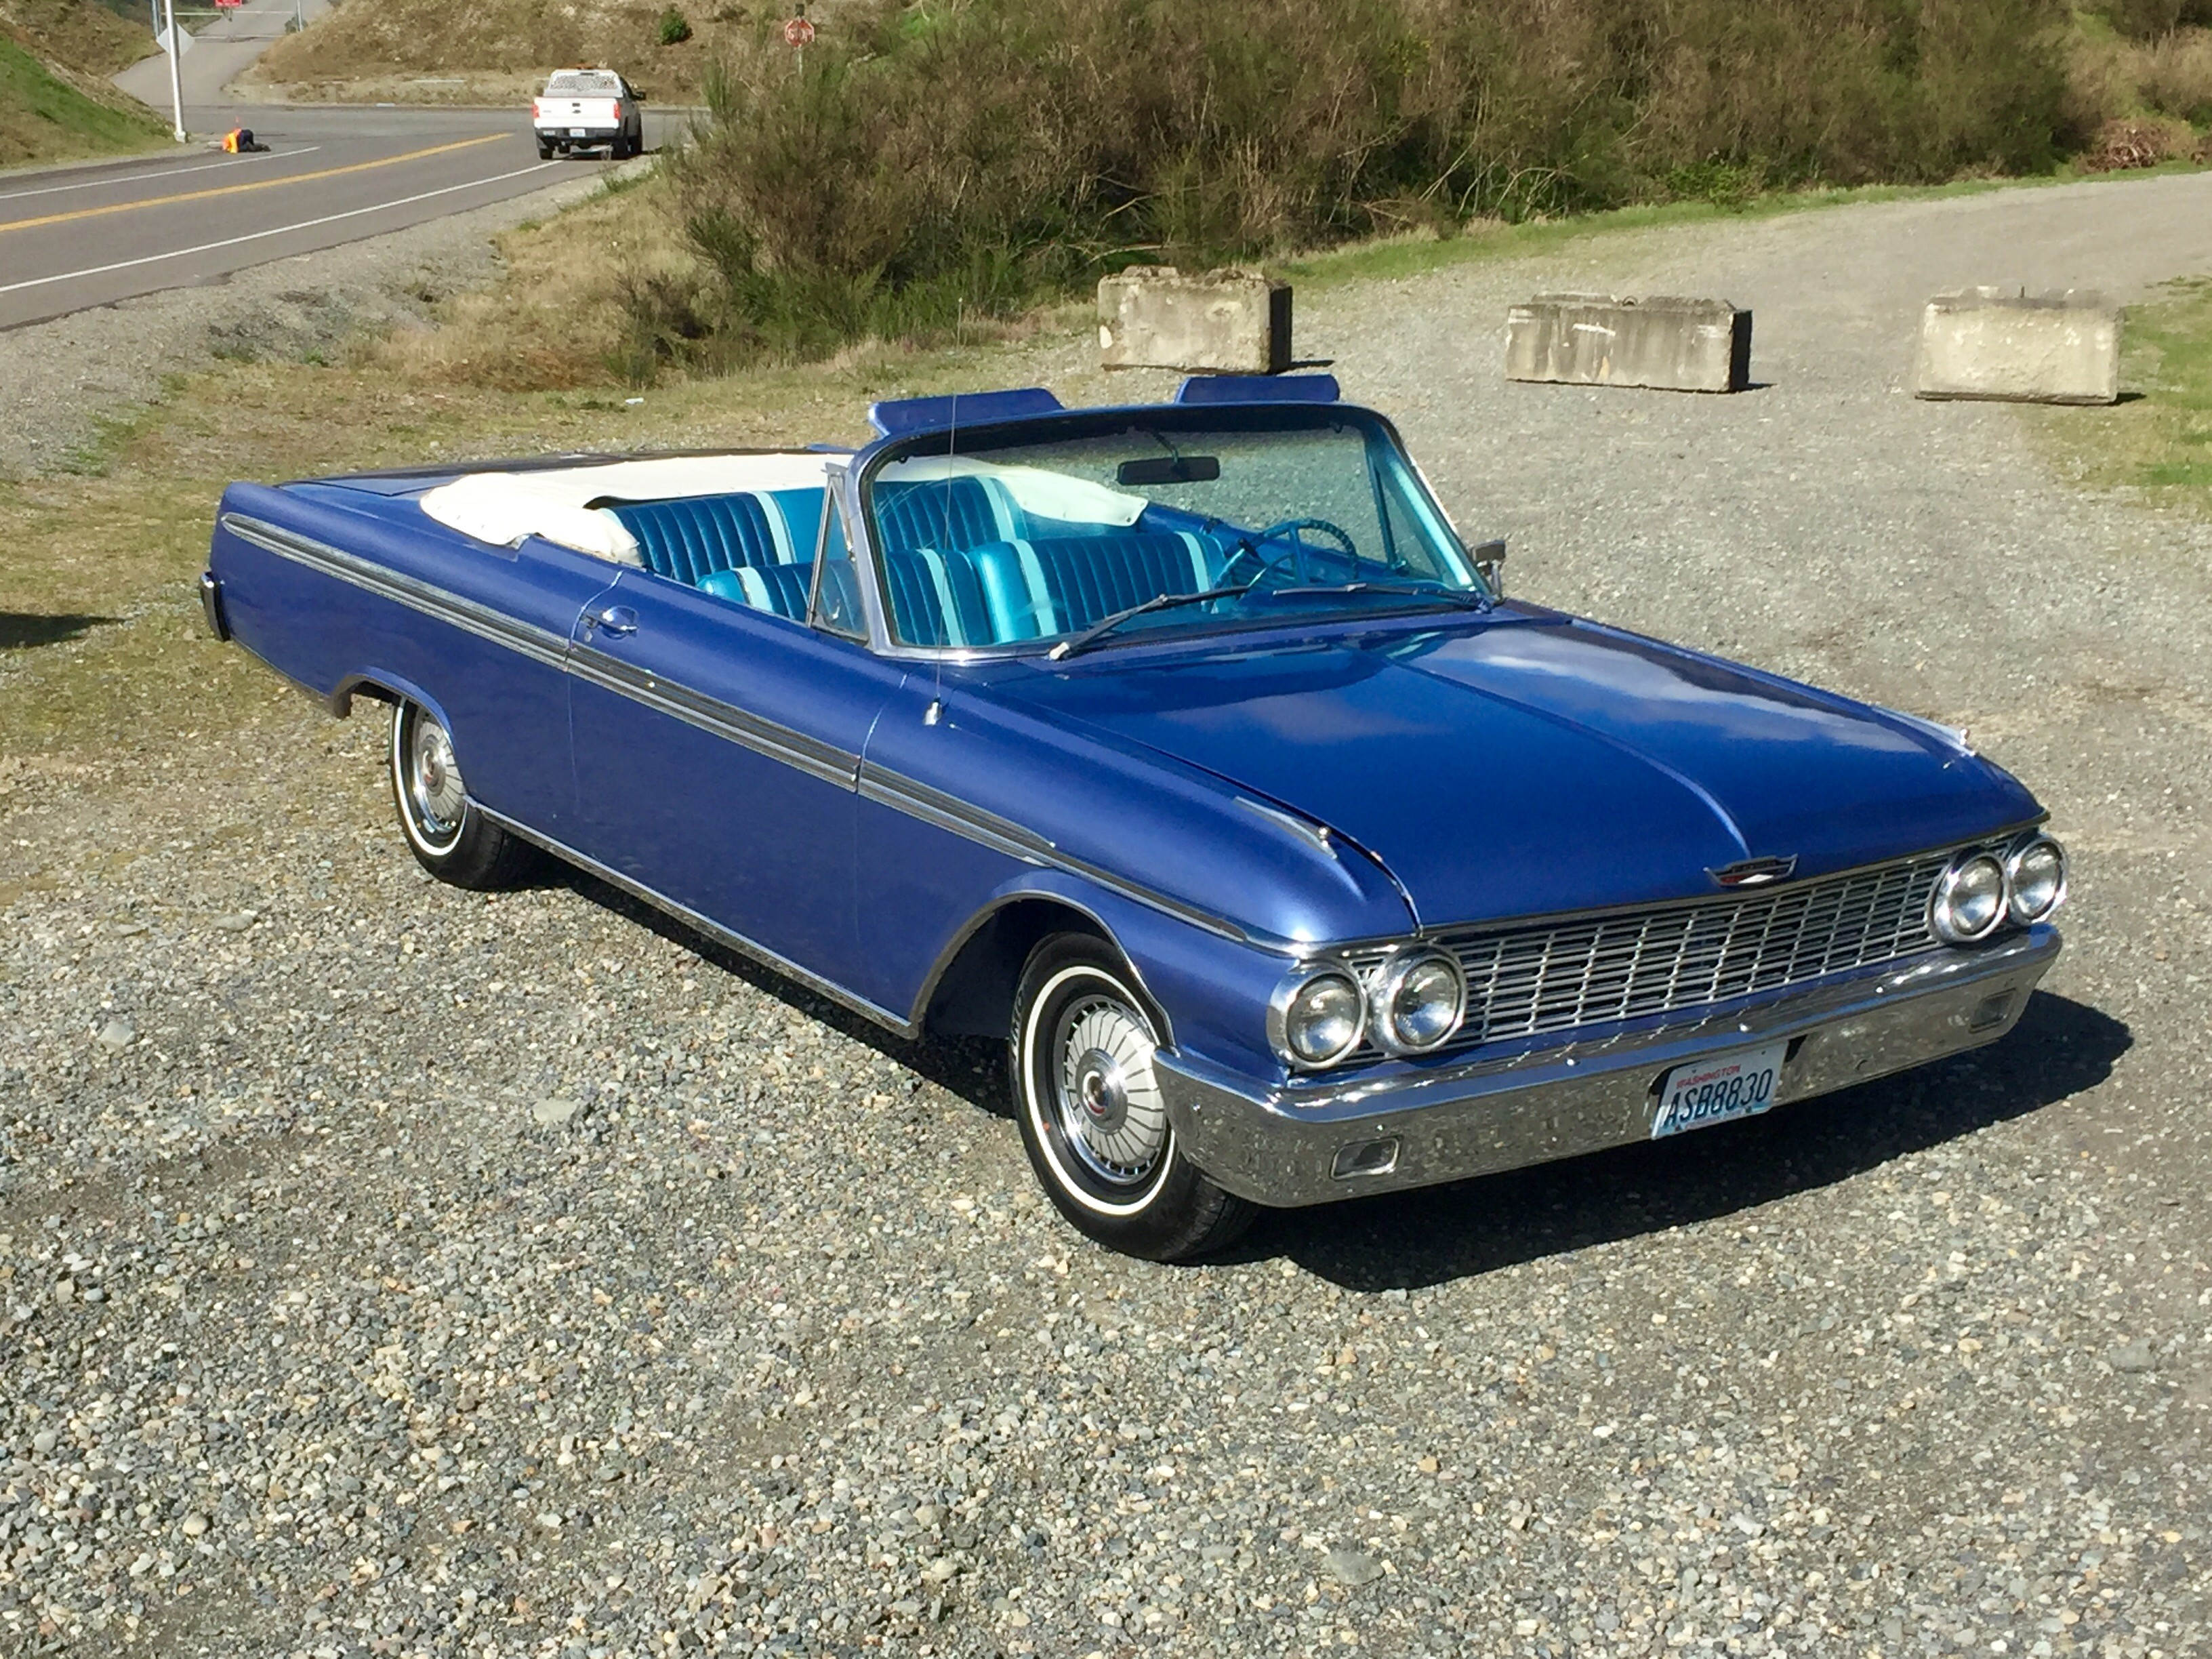 Pristine 1962 Galaxie 500 Sunliner on par with same year Impalas